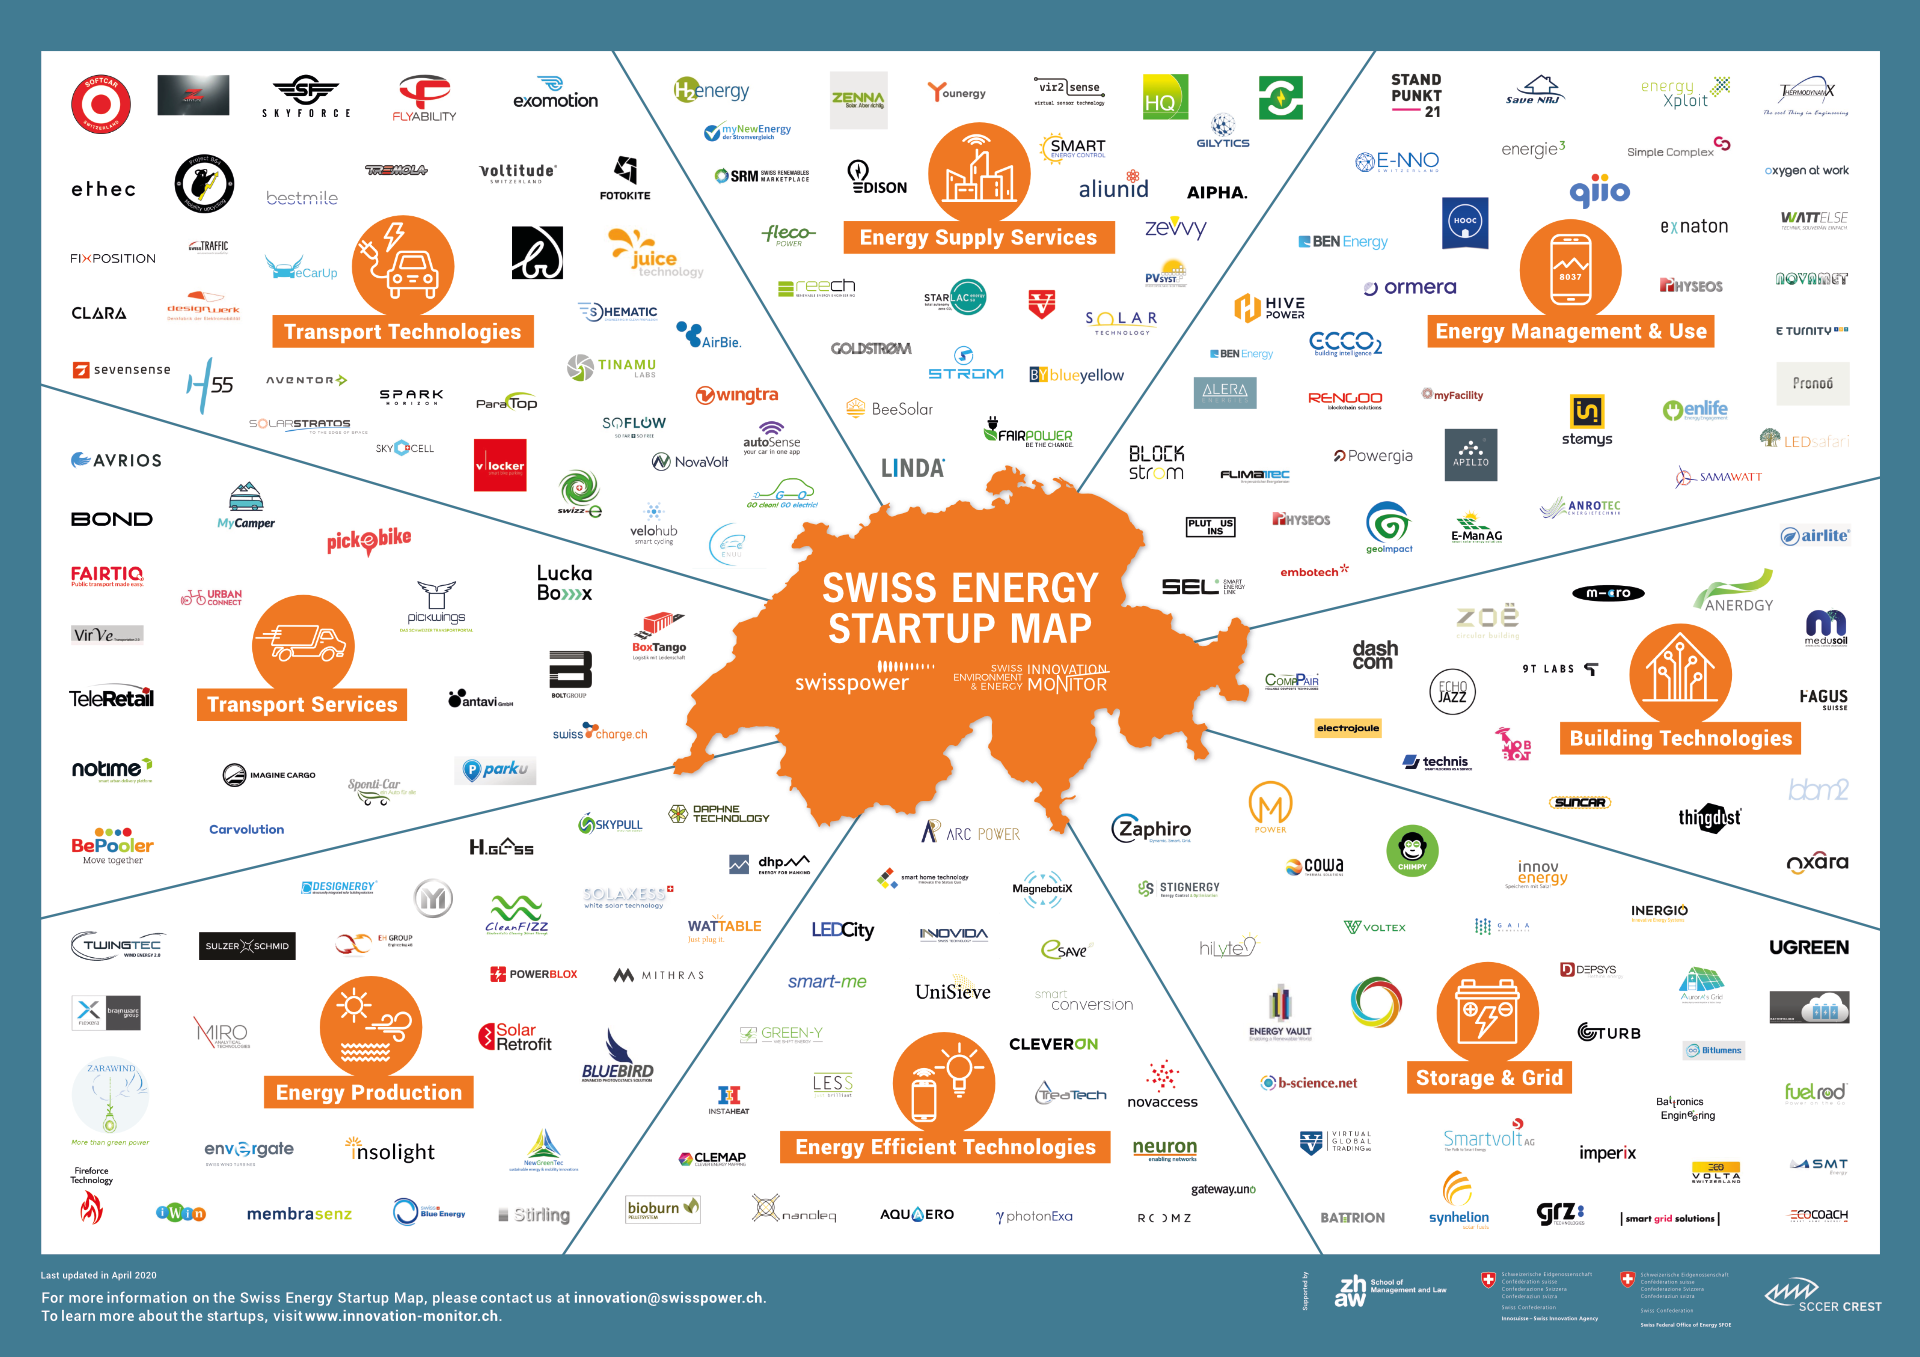 Get the 2020 Energy Startup Map